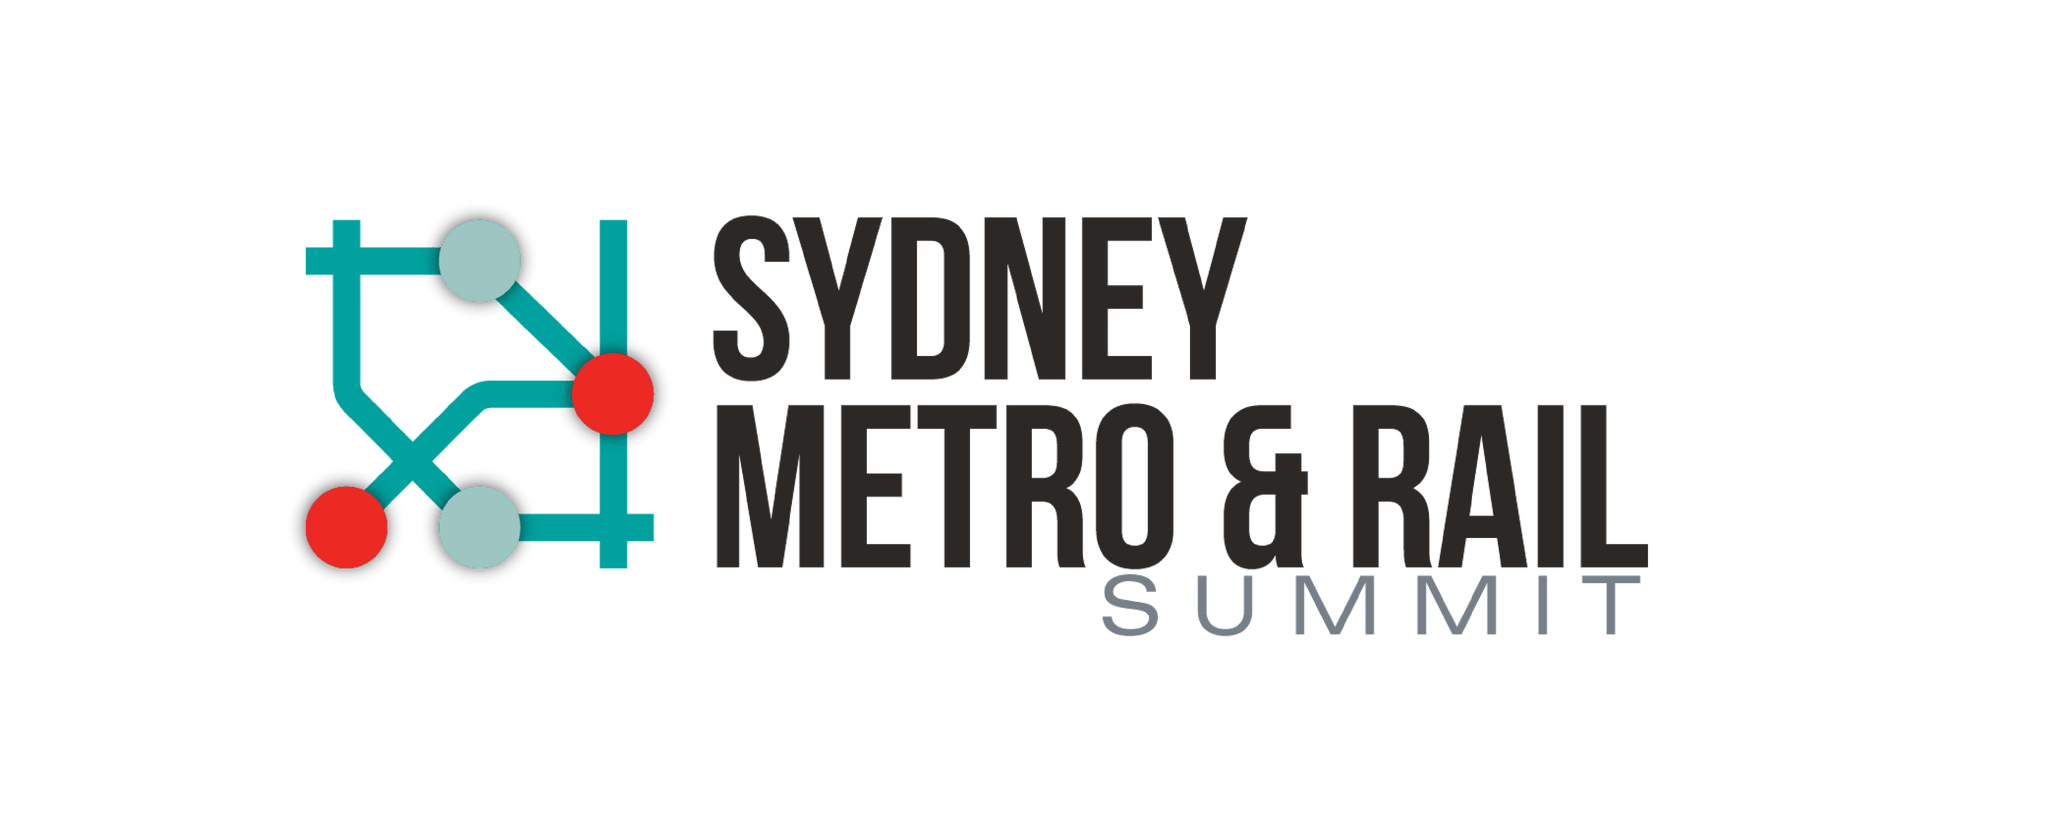 SYDNEY METRO & RAIL SUMMIT